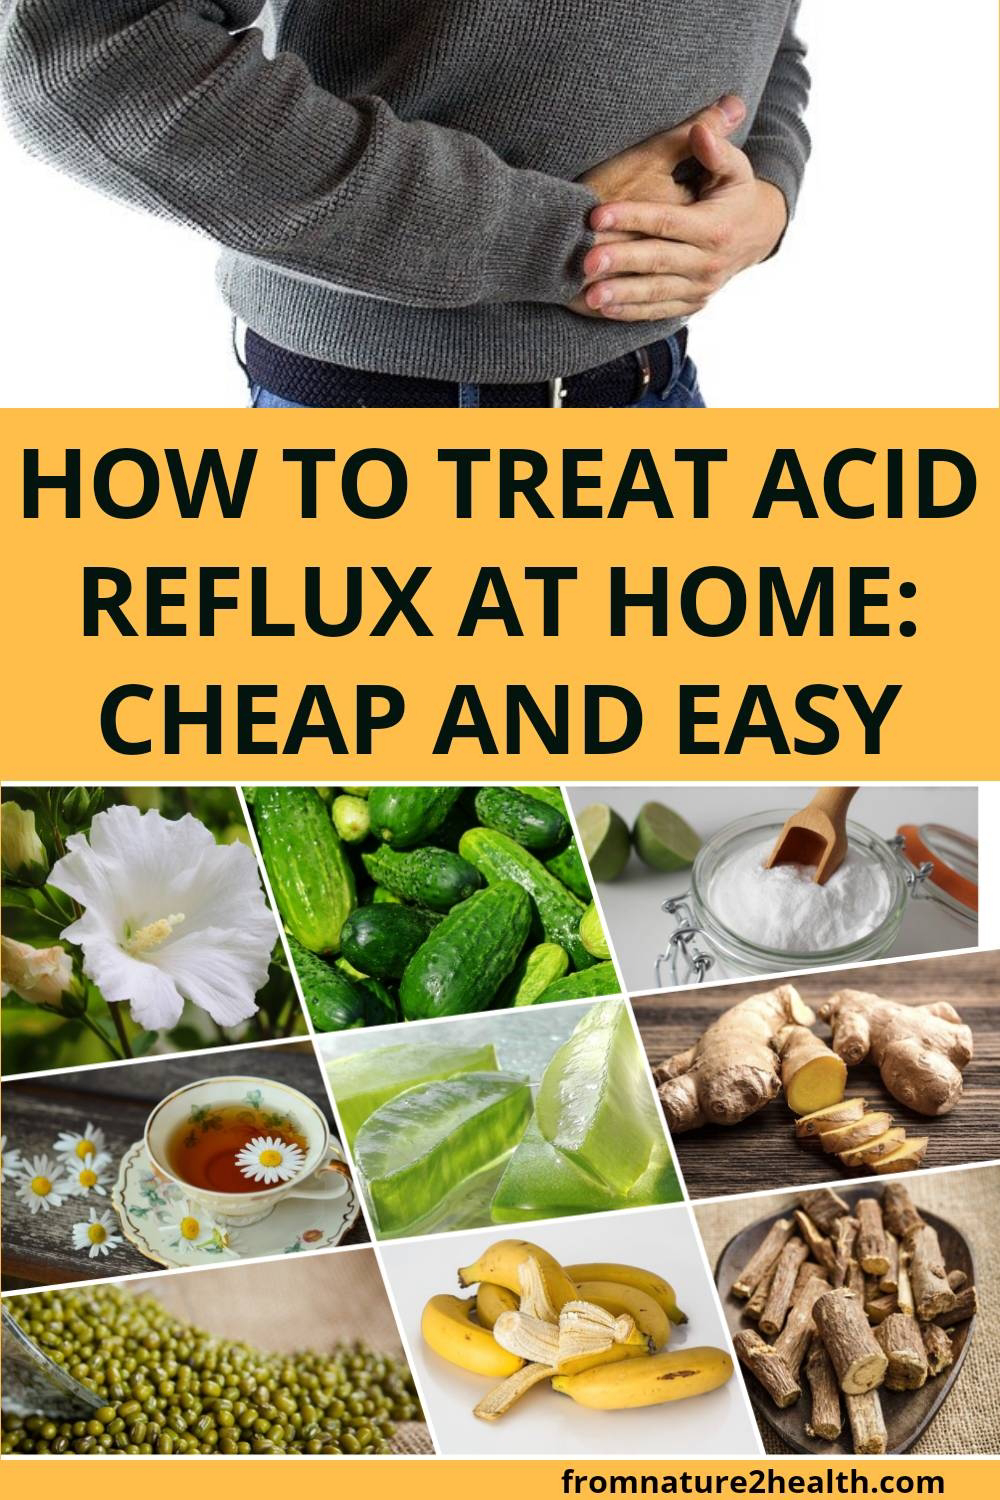 How to Treat Acid Reflux at Home: Cheap and Easy